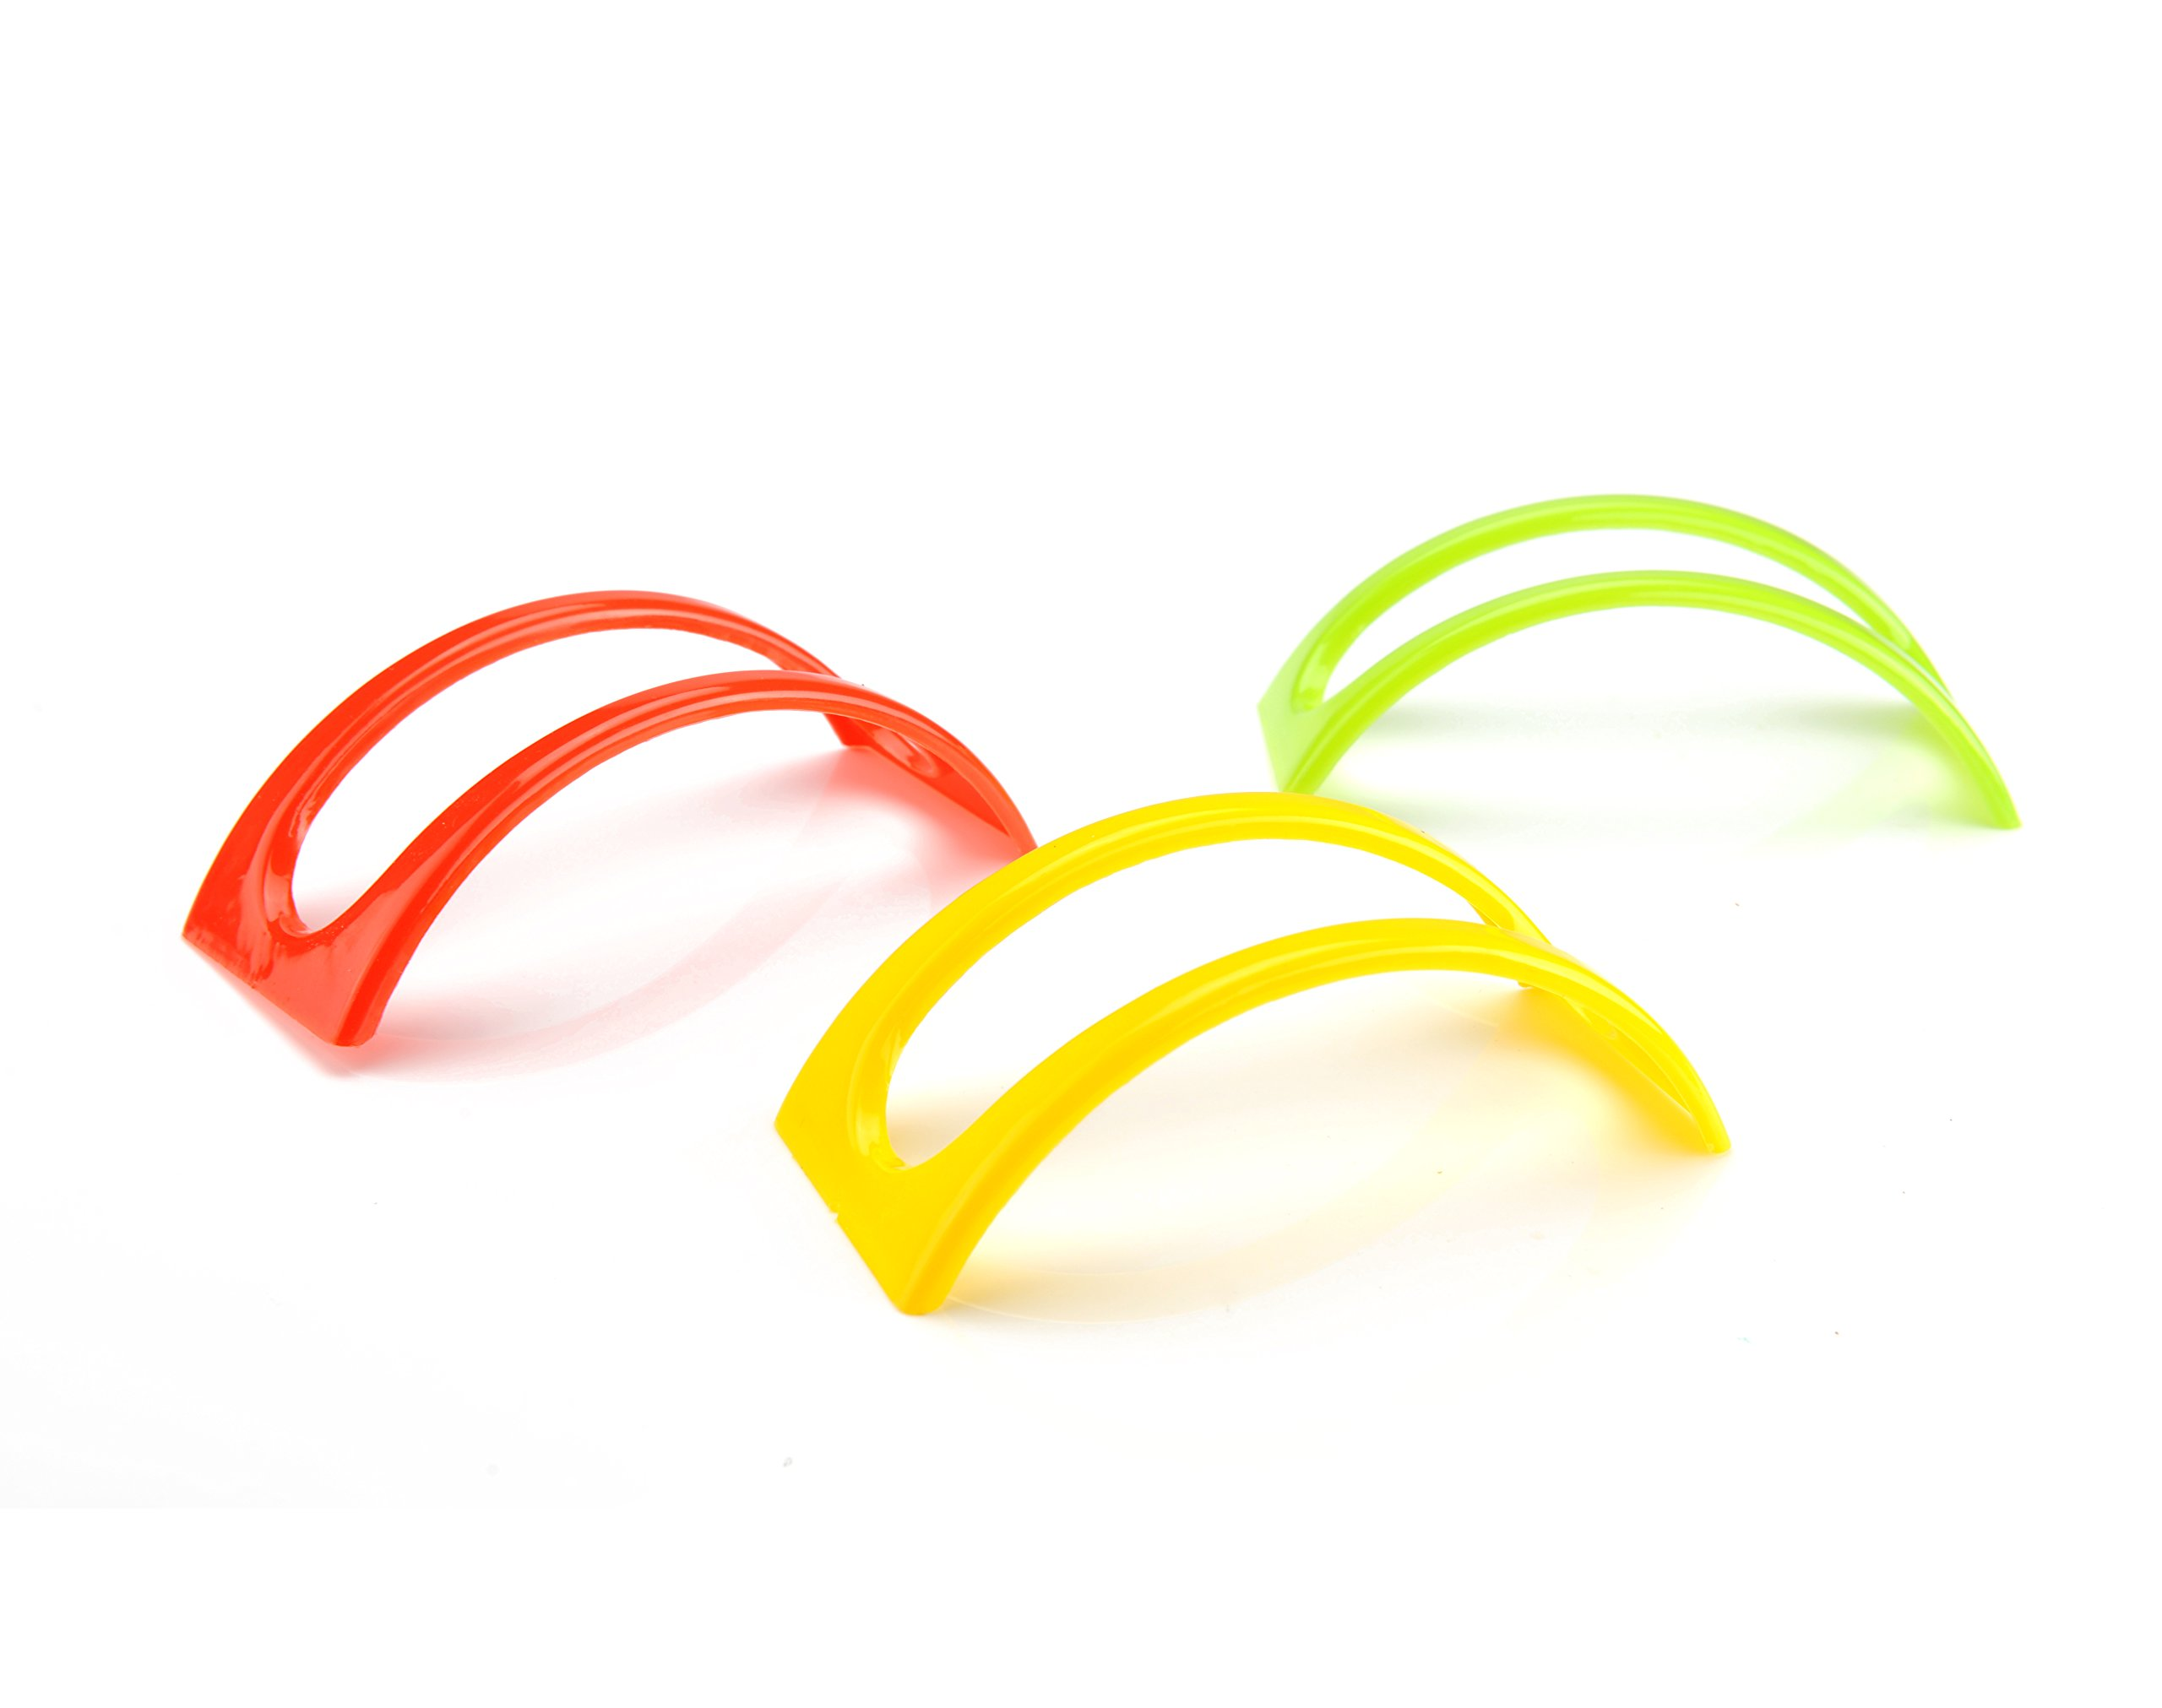 TopKitch Set of 12 Stackable Taco Holders for Hard or Soft Shells - (4 Red, 4 Yellow and 4 Green)